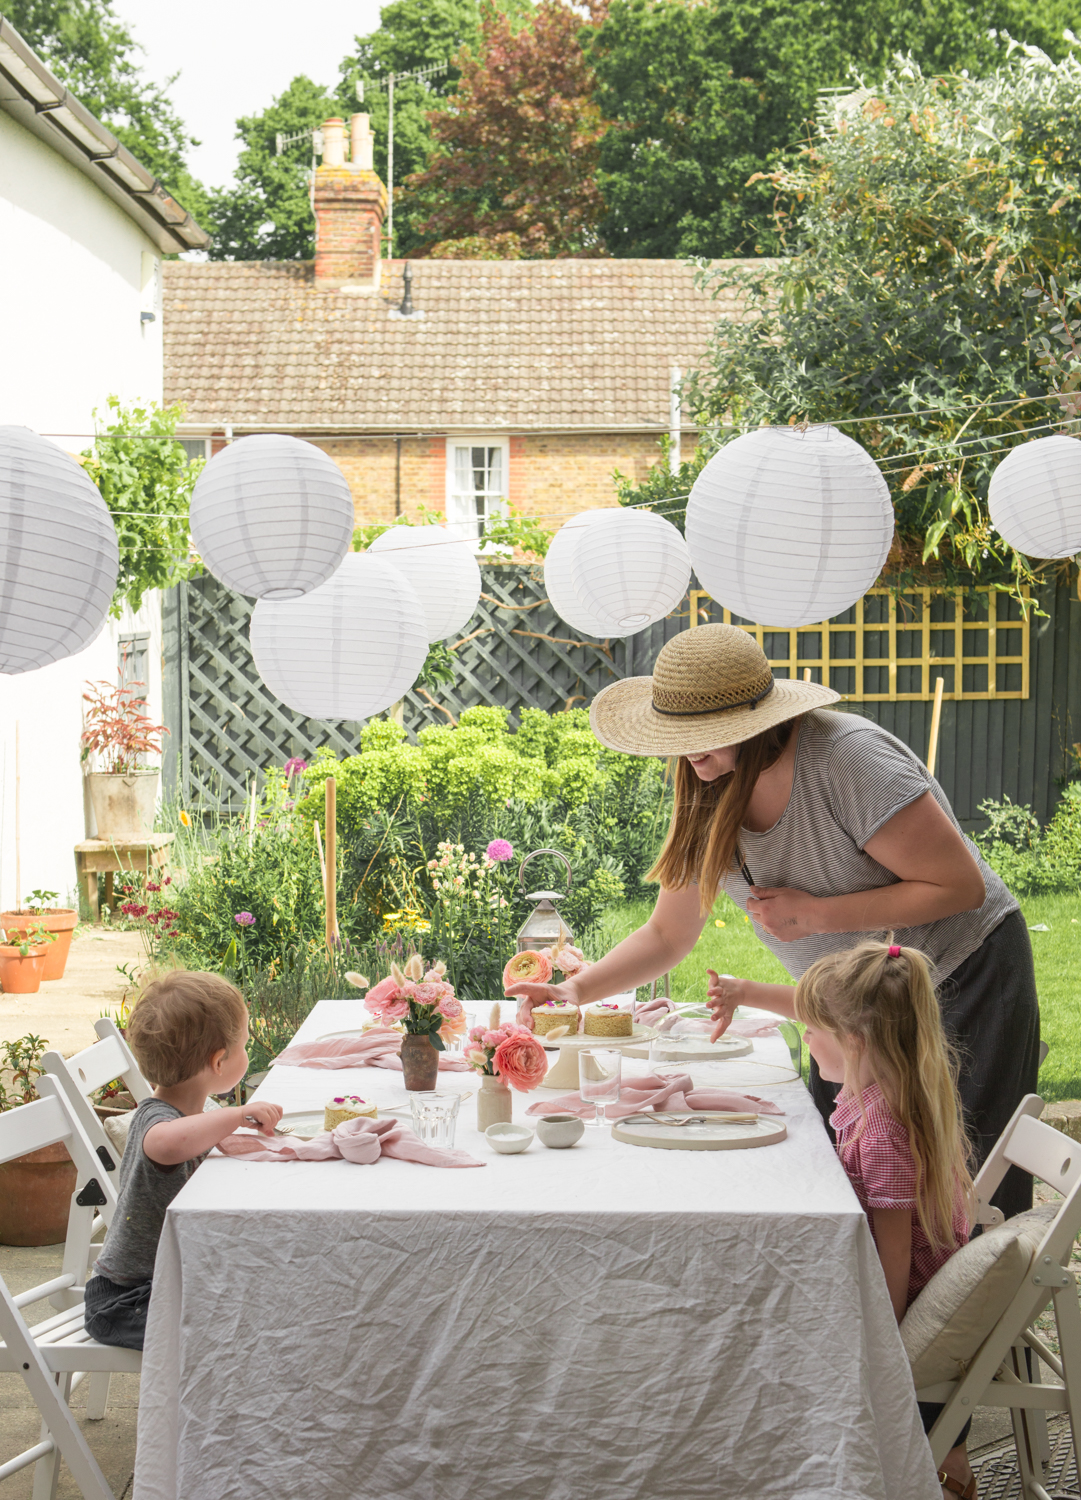 How to lay the table, outdoor afternoon tea, handmade plates, linen, DIY place settings, white paper lanterns, kids afternoon tea, stylists tips, how to style a table,